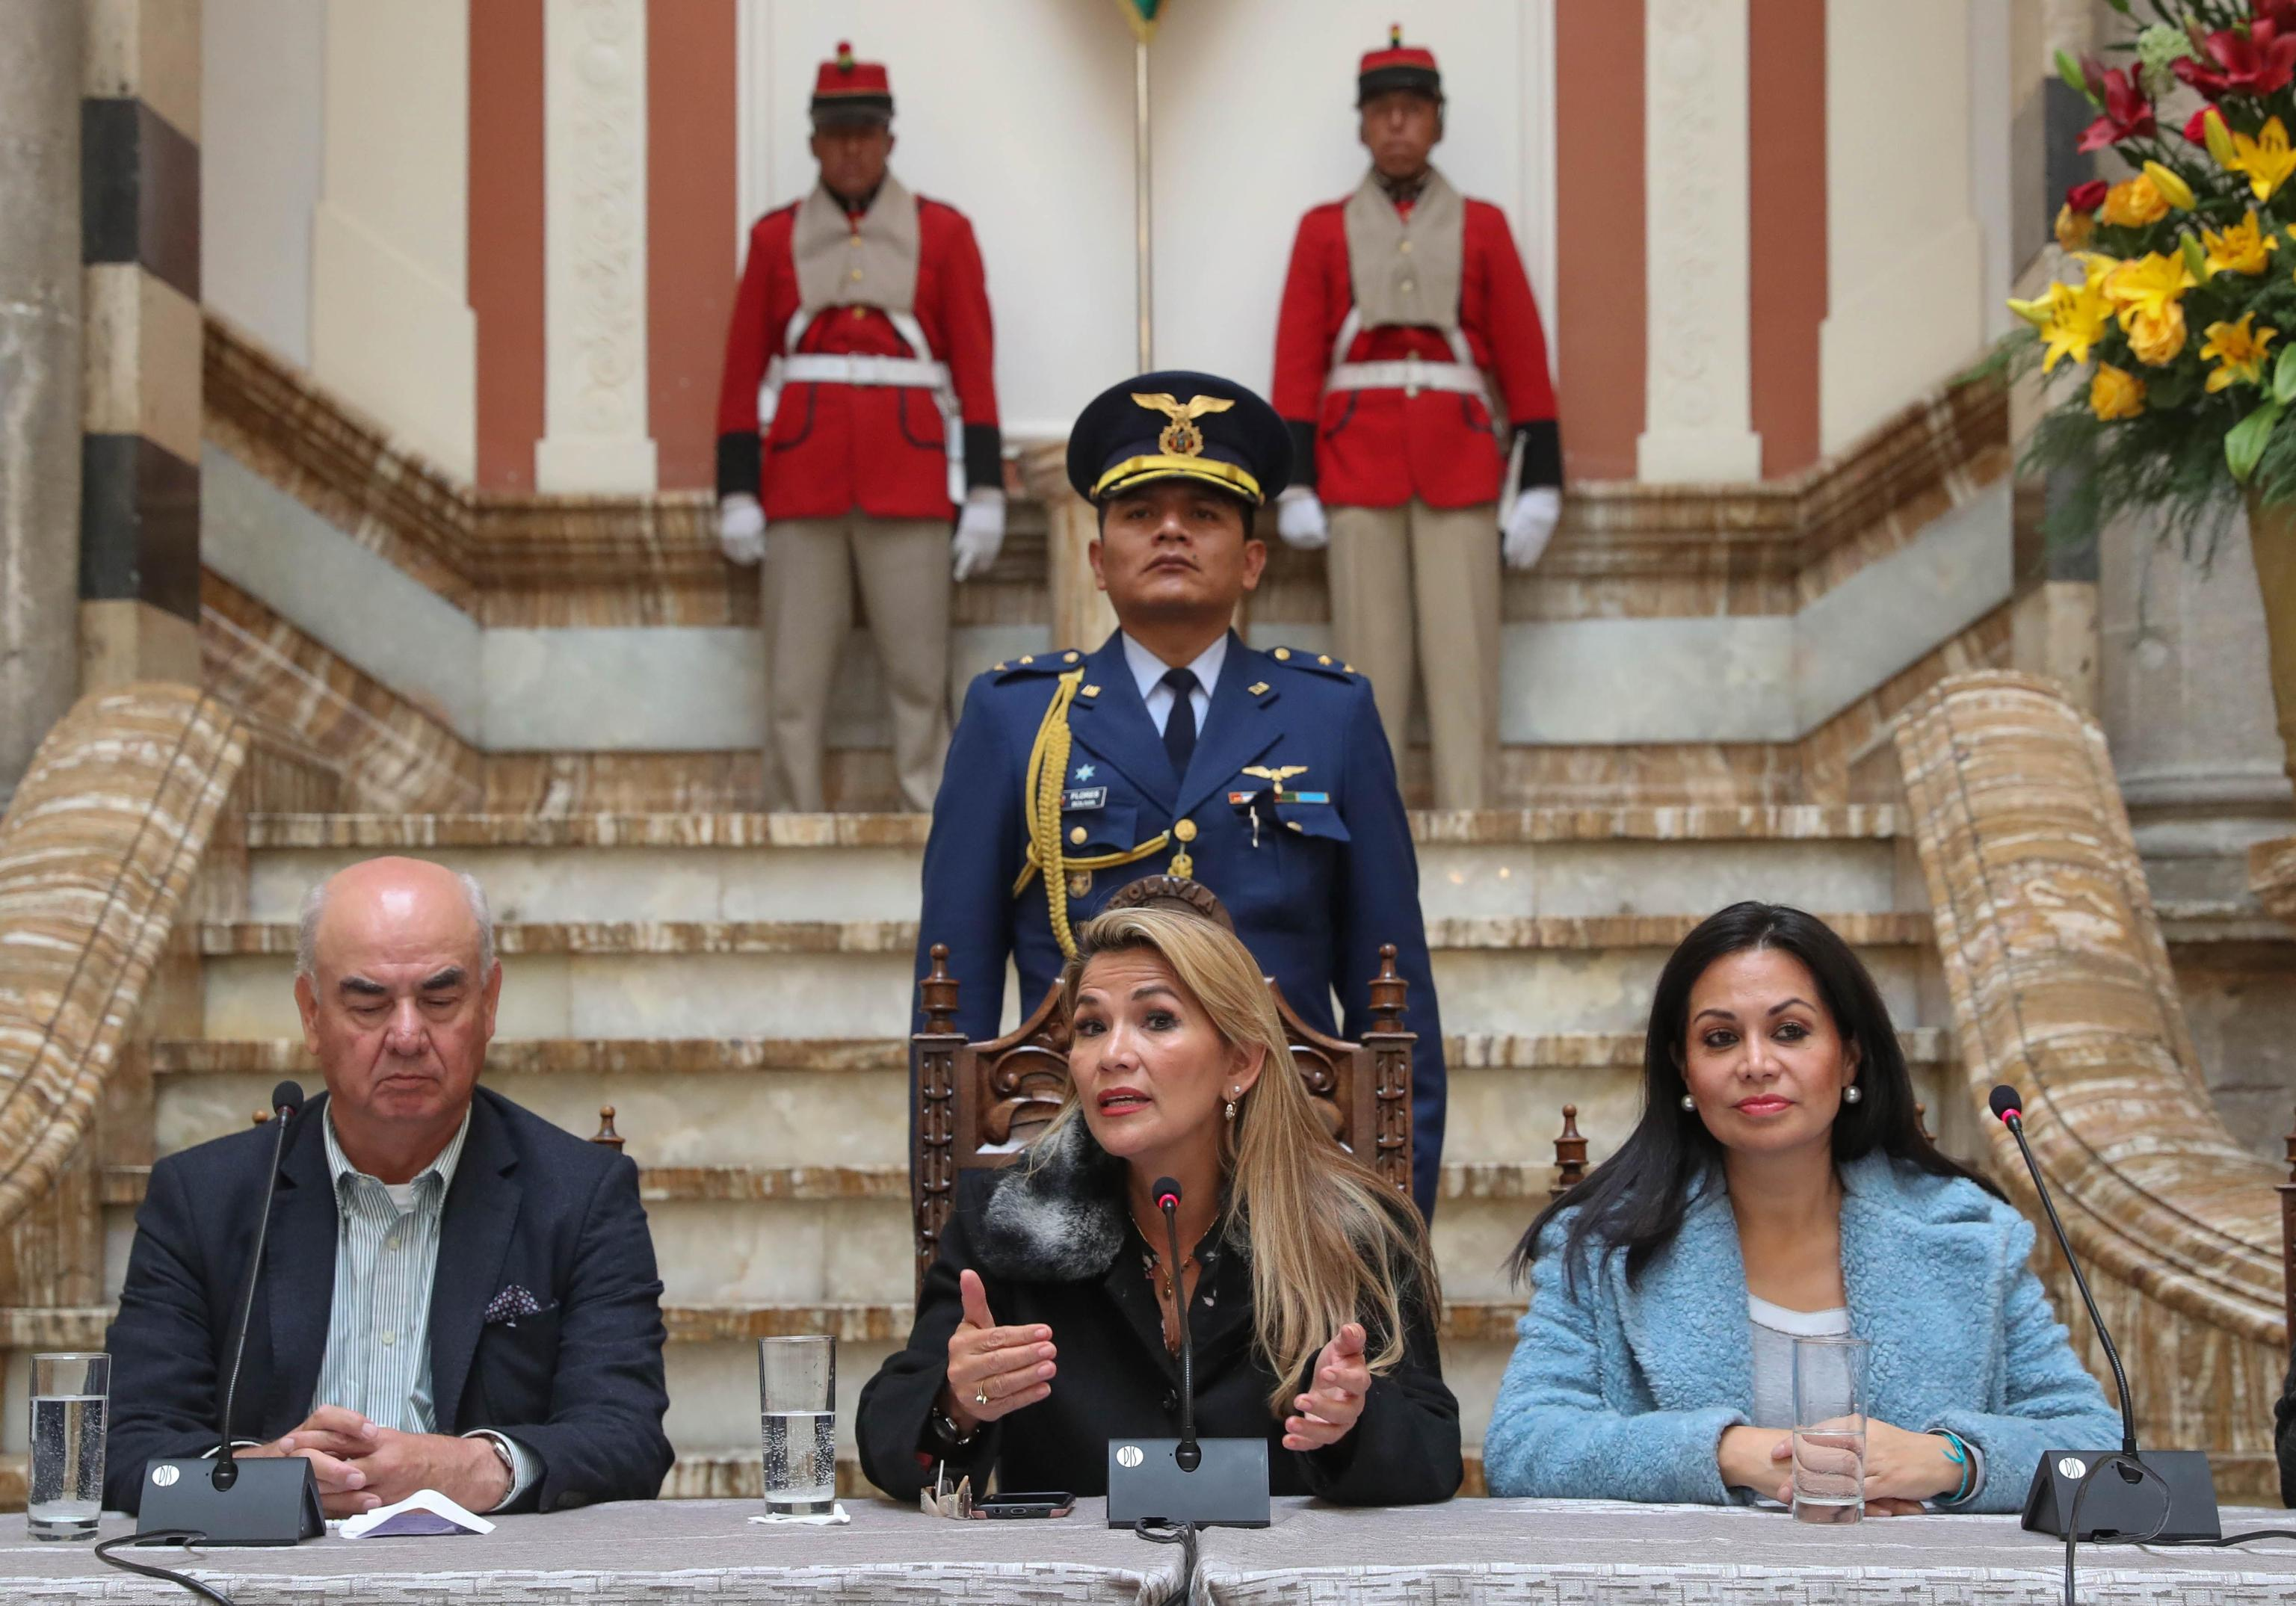 epa07999521 Interim President of Bolivia, Jeanine Anez (C) speaks along with Ministers of Economy, Jose Luis Parada (L) and Minister of Communication, Roxana Lizarraga (R) at a press conference at Government Palace in La Paz, Bolivia, 15 November 2019. Anez announced that this day she hopes to start the process for new elections after the failed elections that led to the resignation of Evo Morales.  EPA/RODRIGO SURA